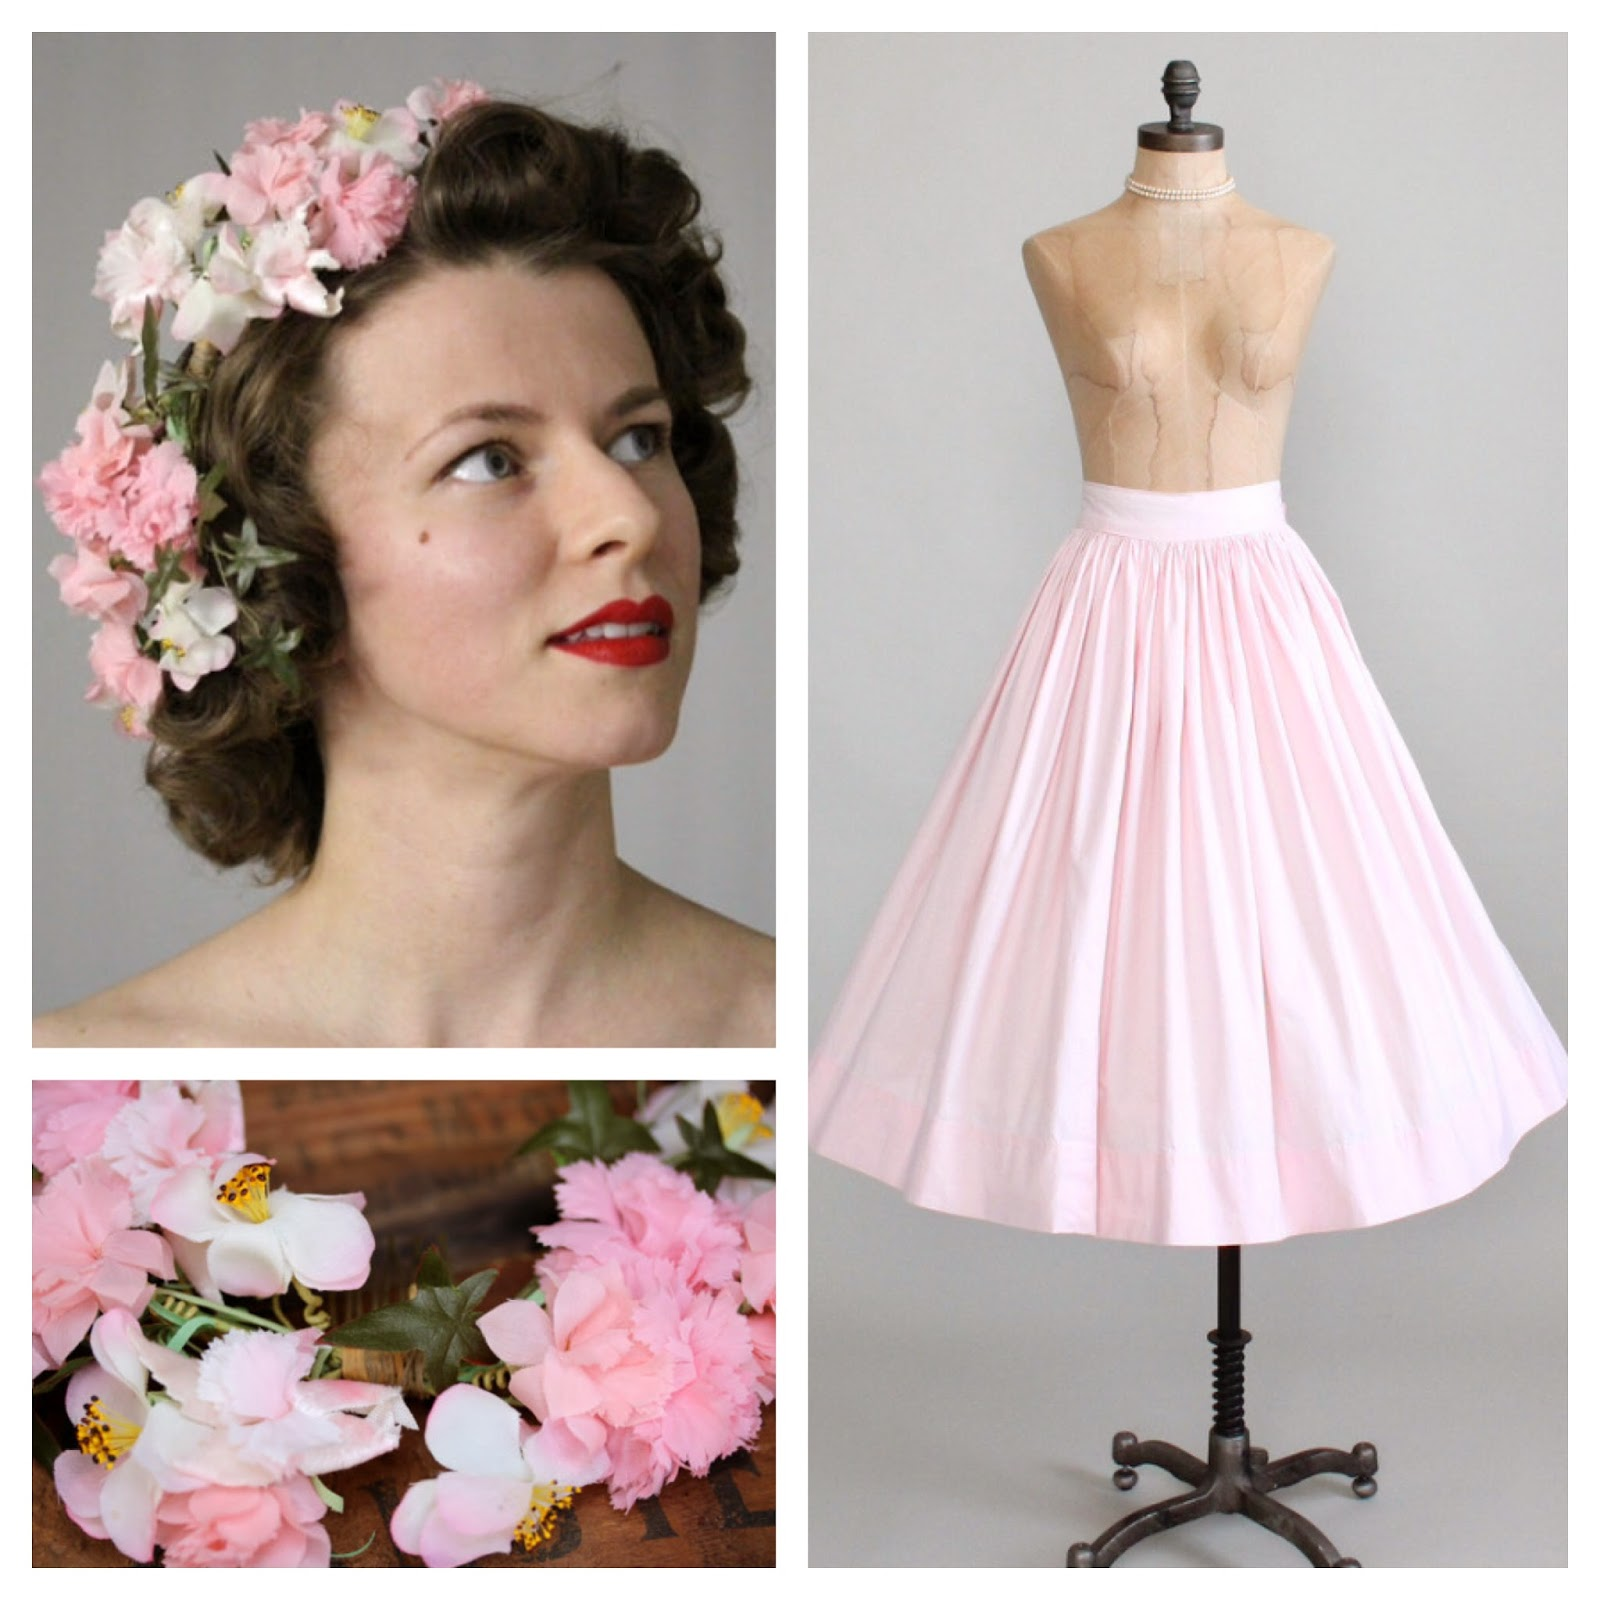 Blooming Vintage #1950s #skirt #pink #flower #vintage #hair